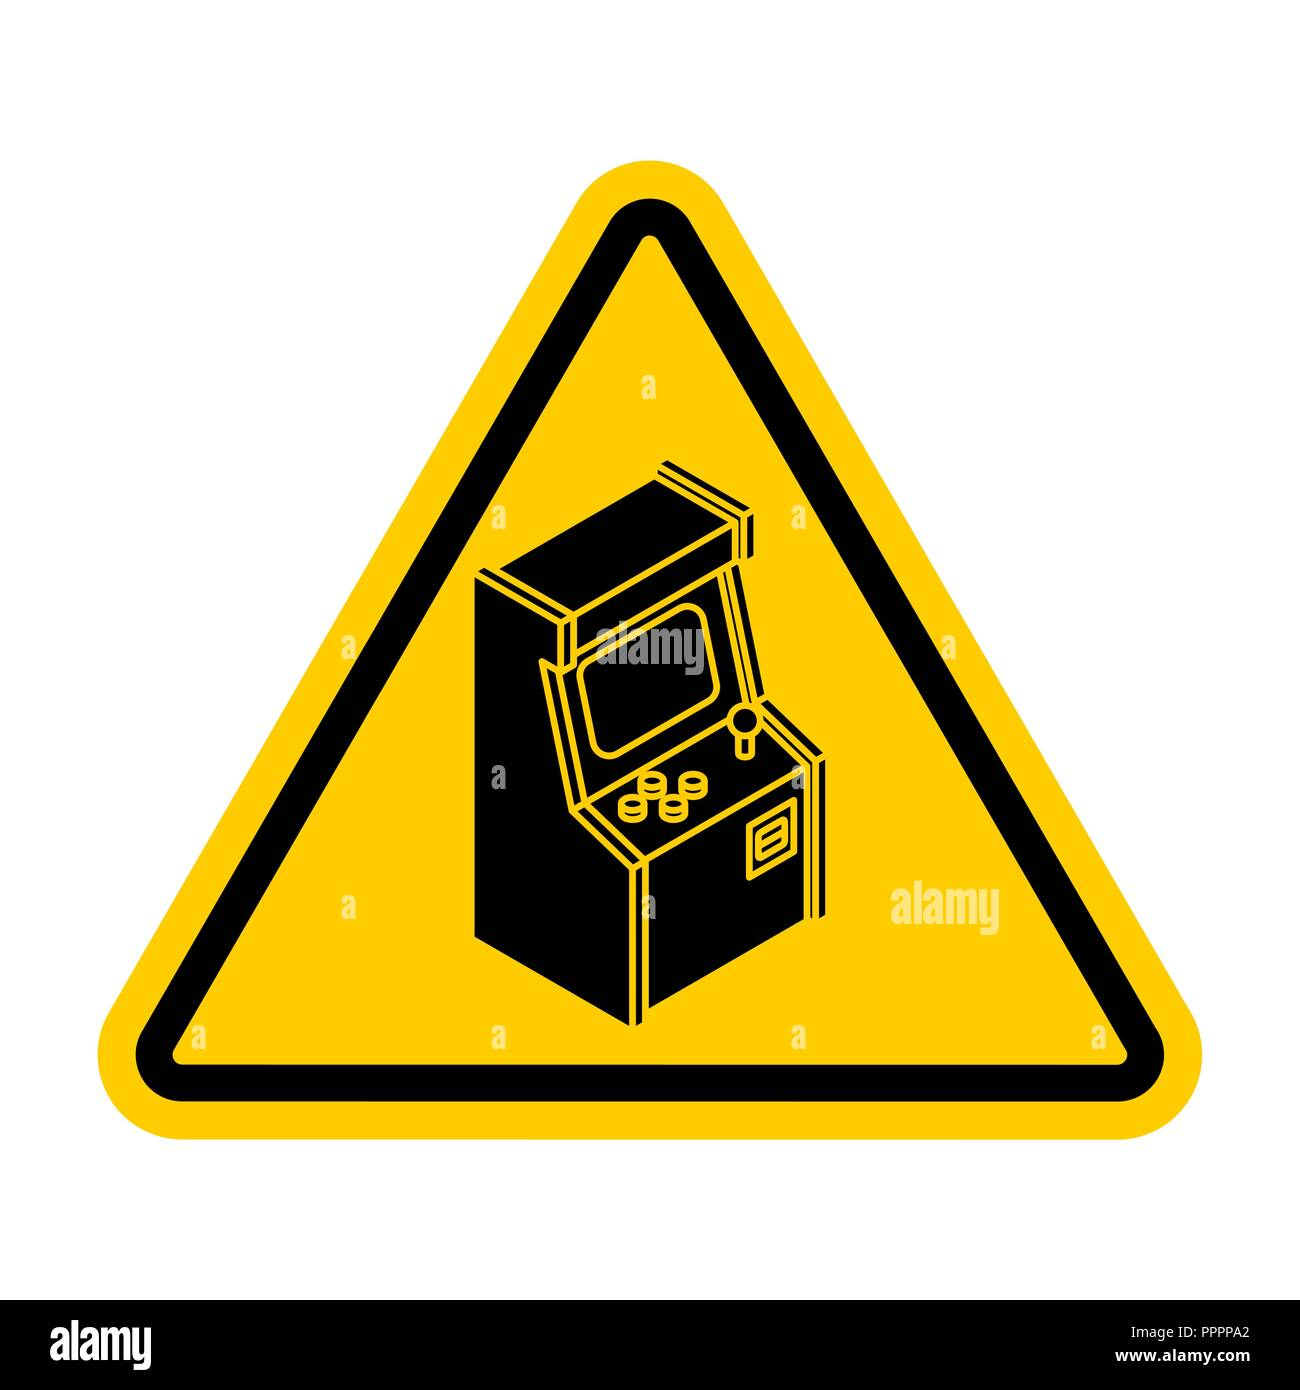 Attention Old Arcade Machine. Caution Retro VideoGame Gaming. Yellow road sign. Warning play - Stock Vector